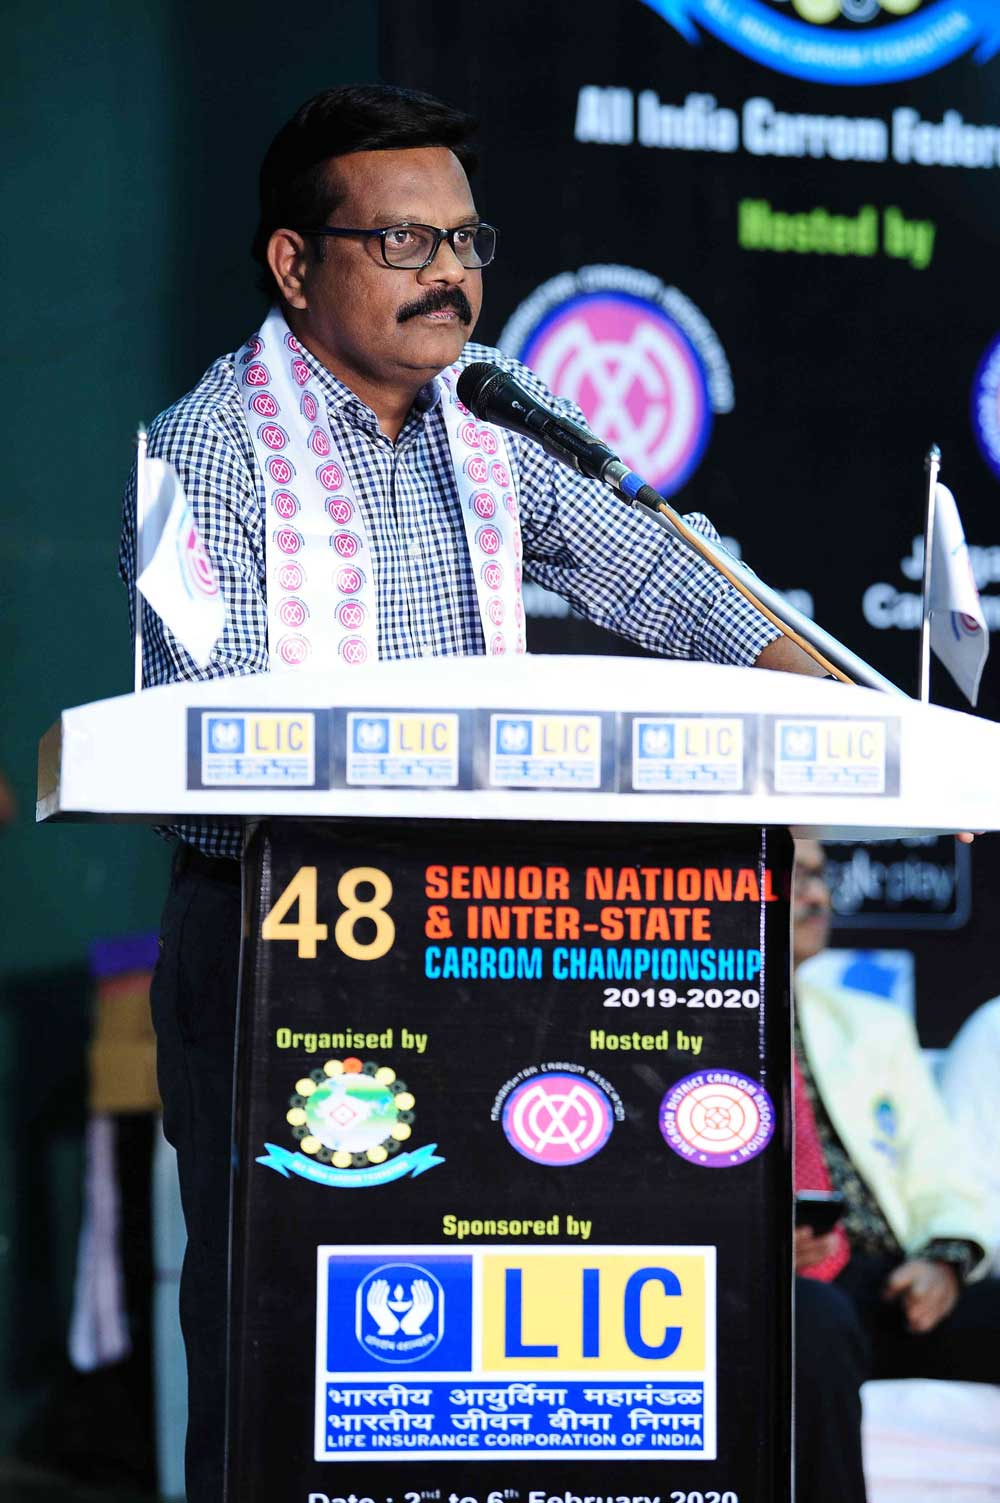 2019_48th_senior_national_and_inter_state_carrom_championship_18